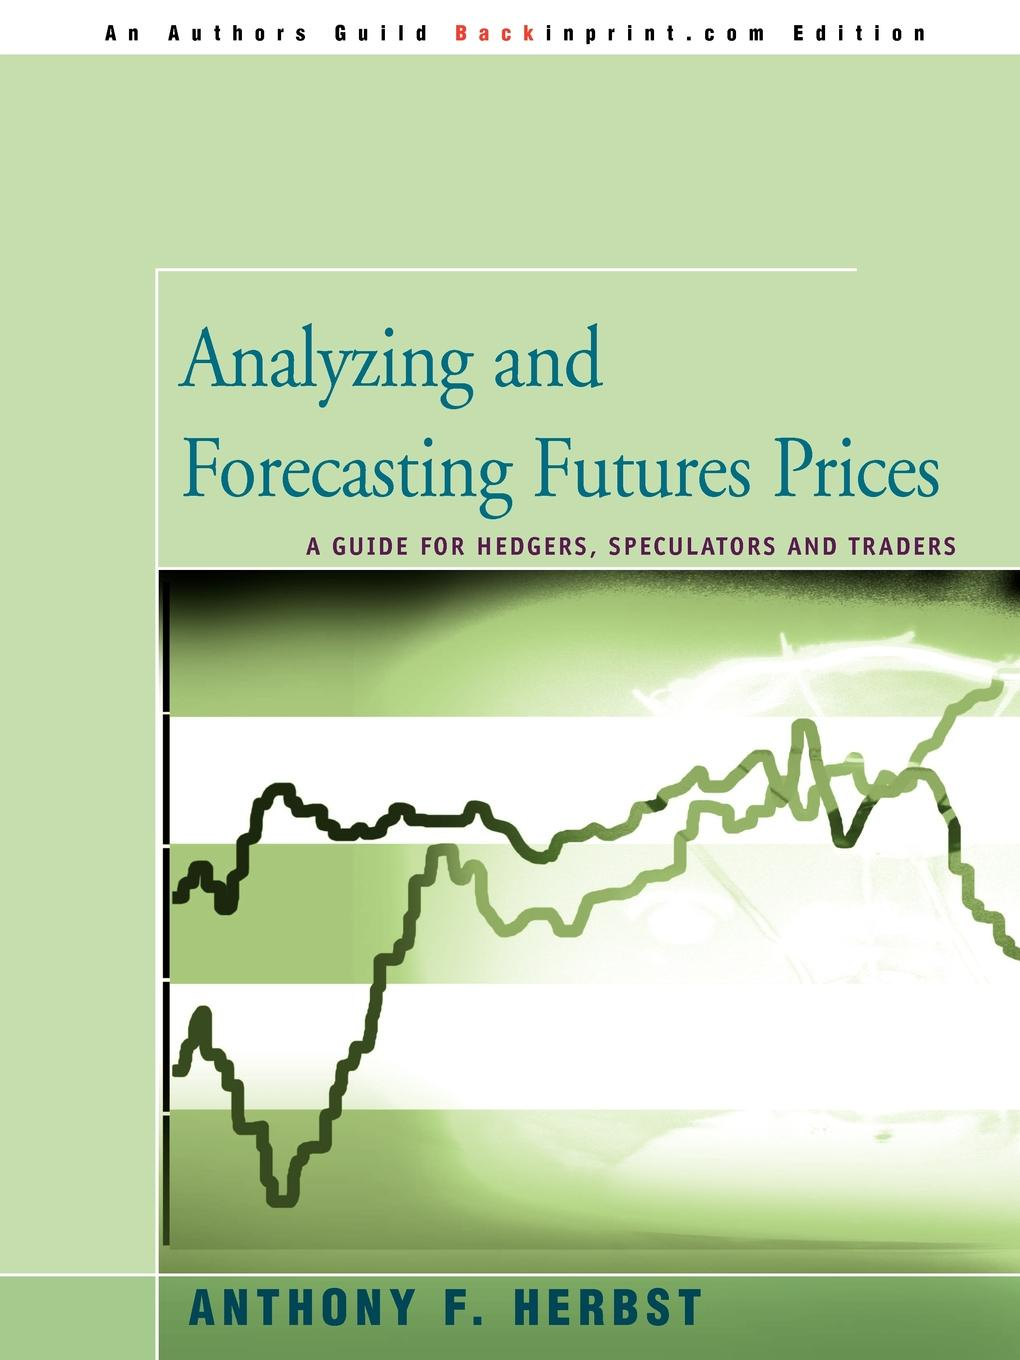 Anthony F. Herbst Analyzing and Forecasting Futures Prices. A Guide for Hedgers, Speculators, and Traders gordon peery f the post reform guide to derivatives and futures isbn 9781118205402